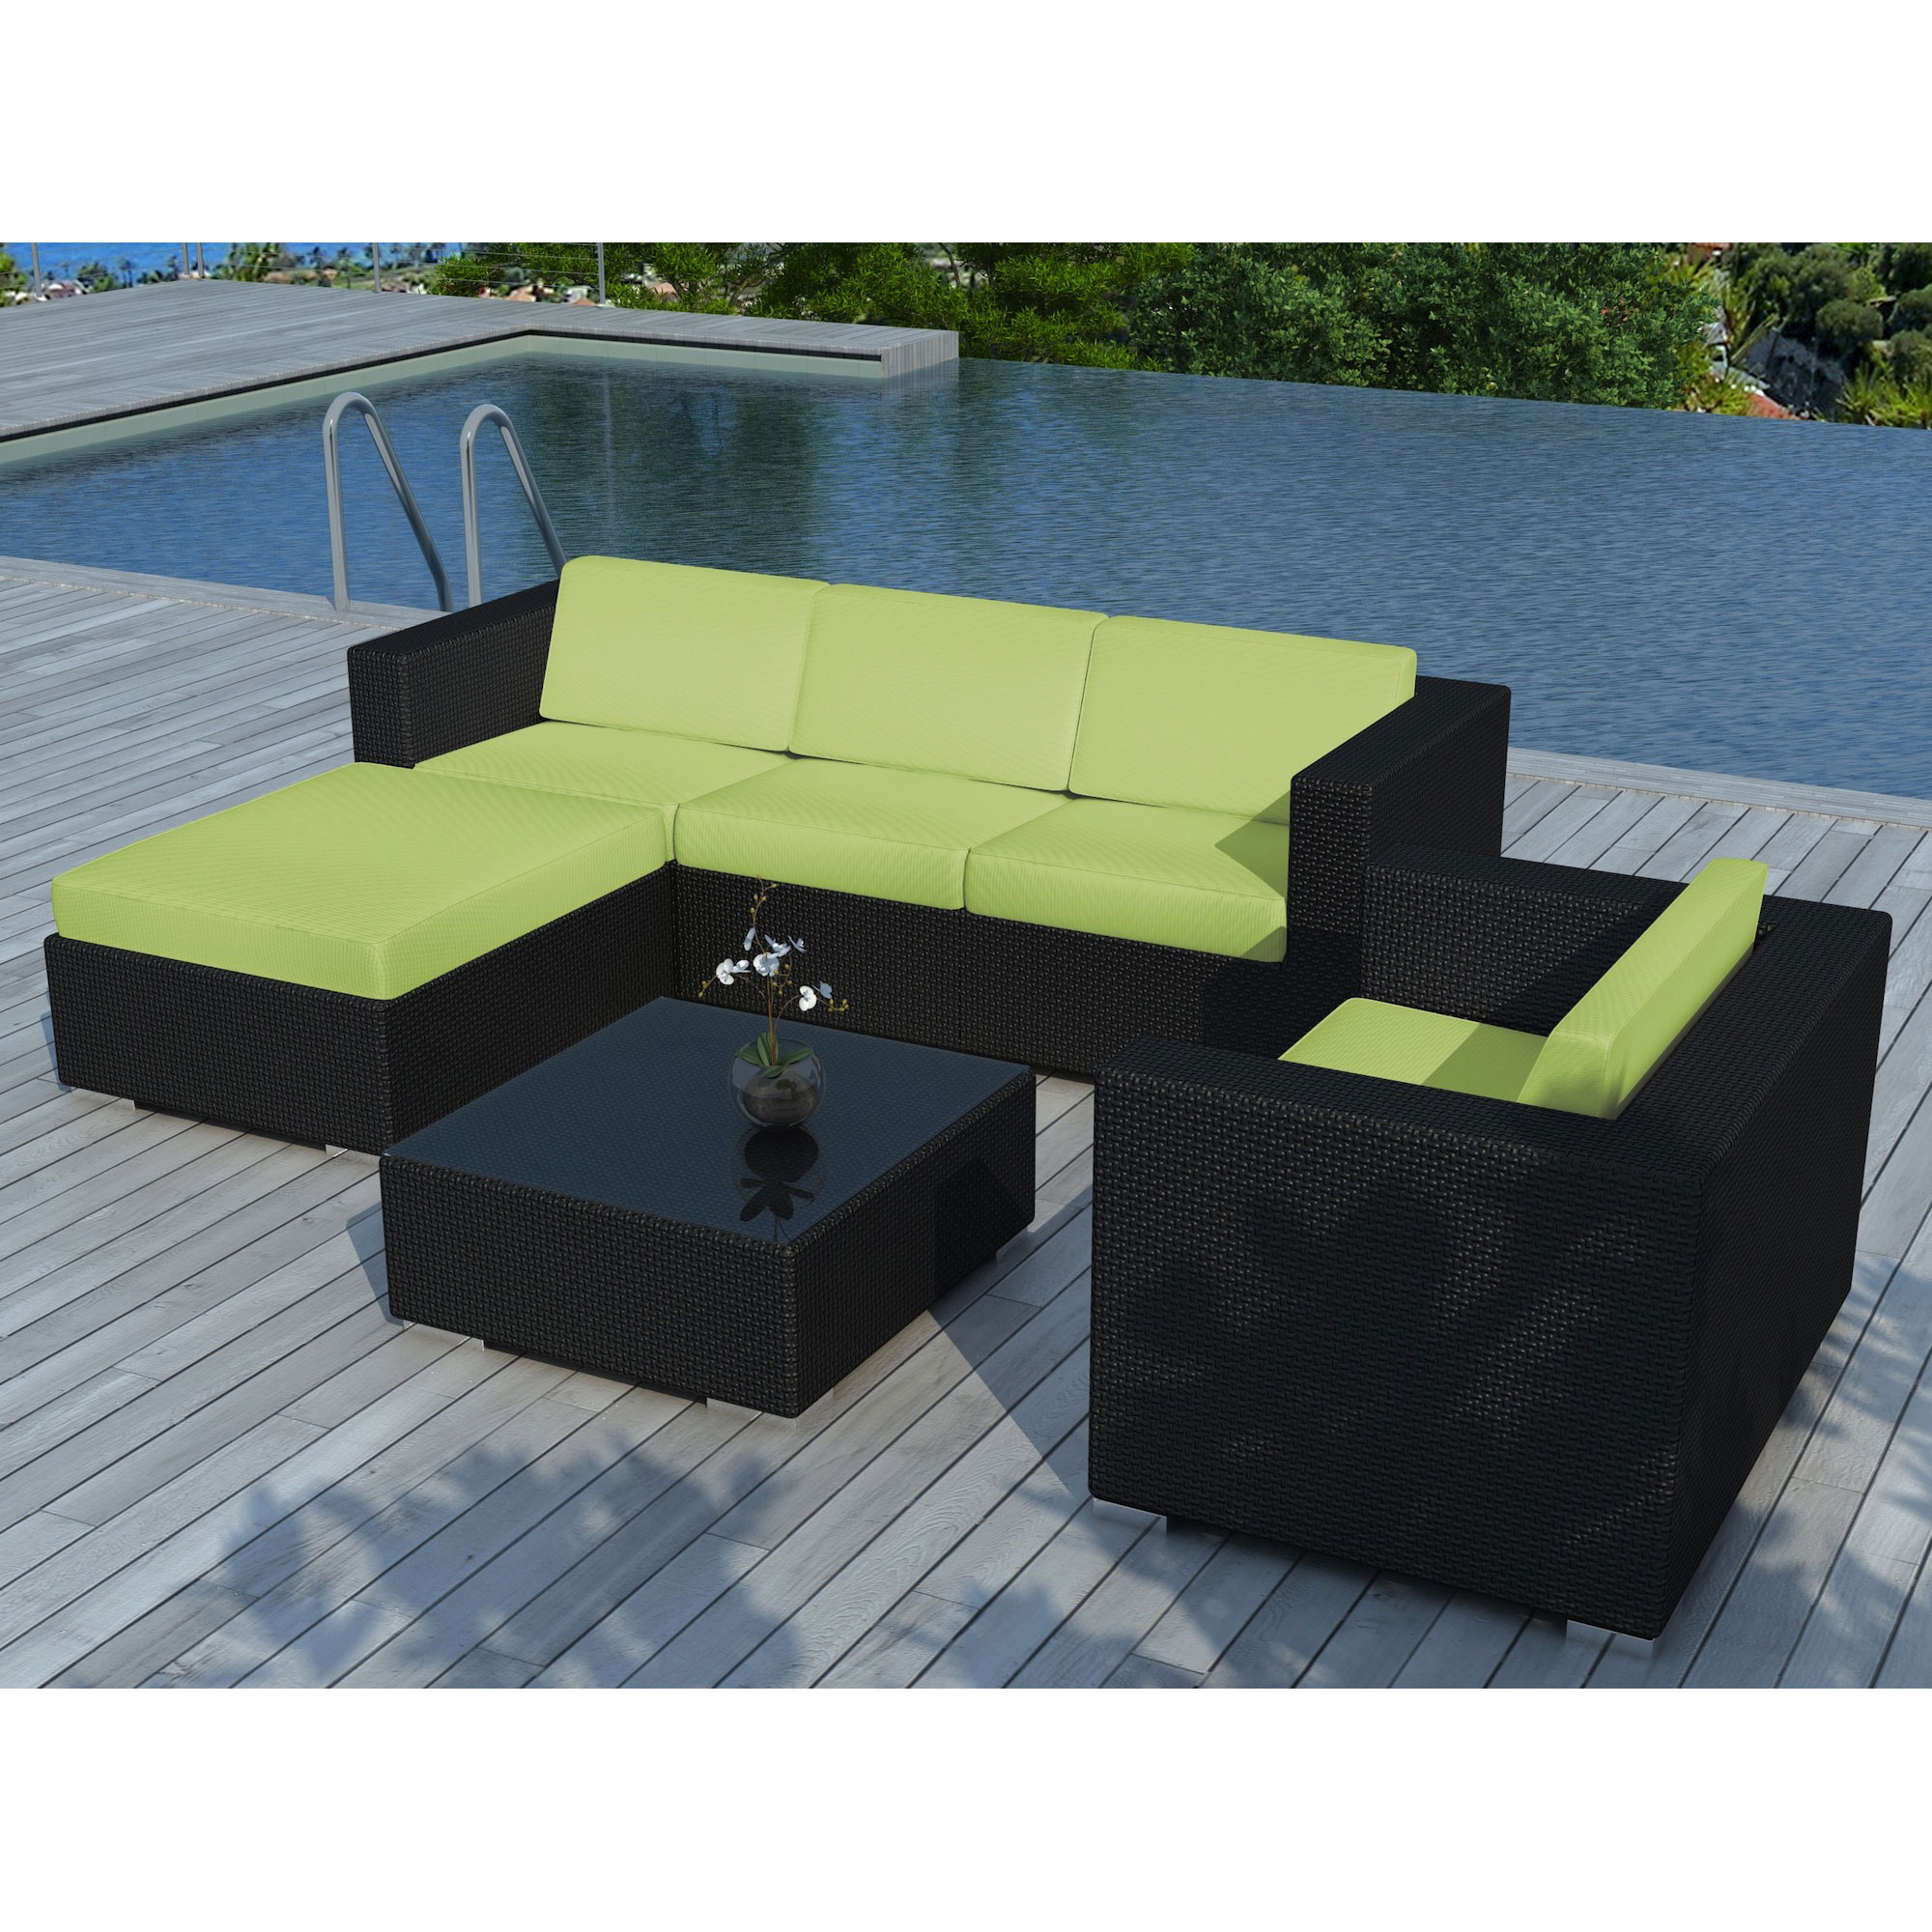 salon de jardin fauteuil 4 id es de d coration int rieure french decor. Black Bedroom Furniture Sets. Home Design Ideas